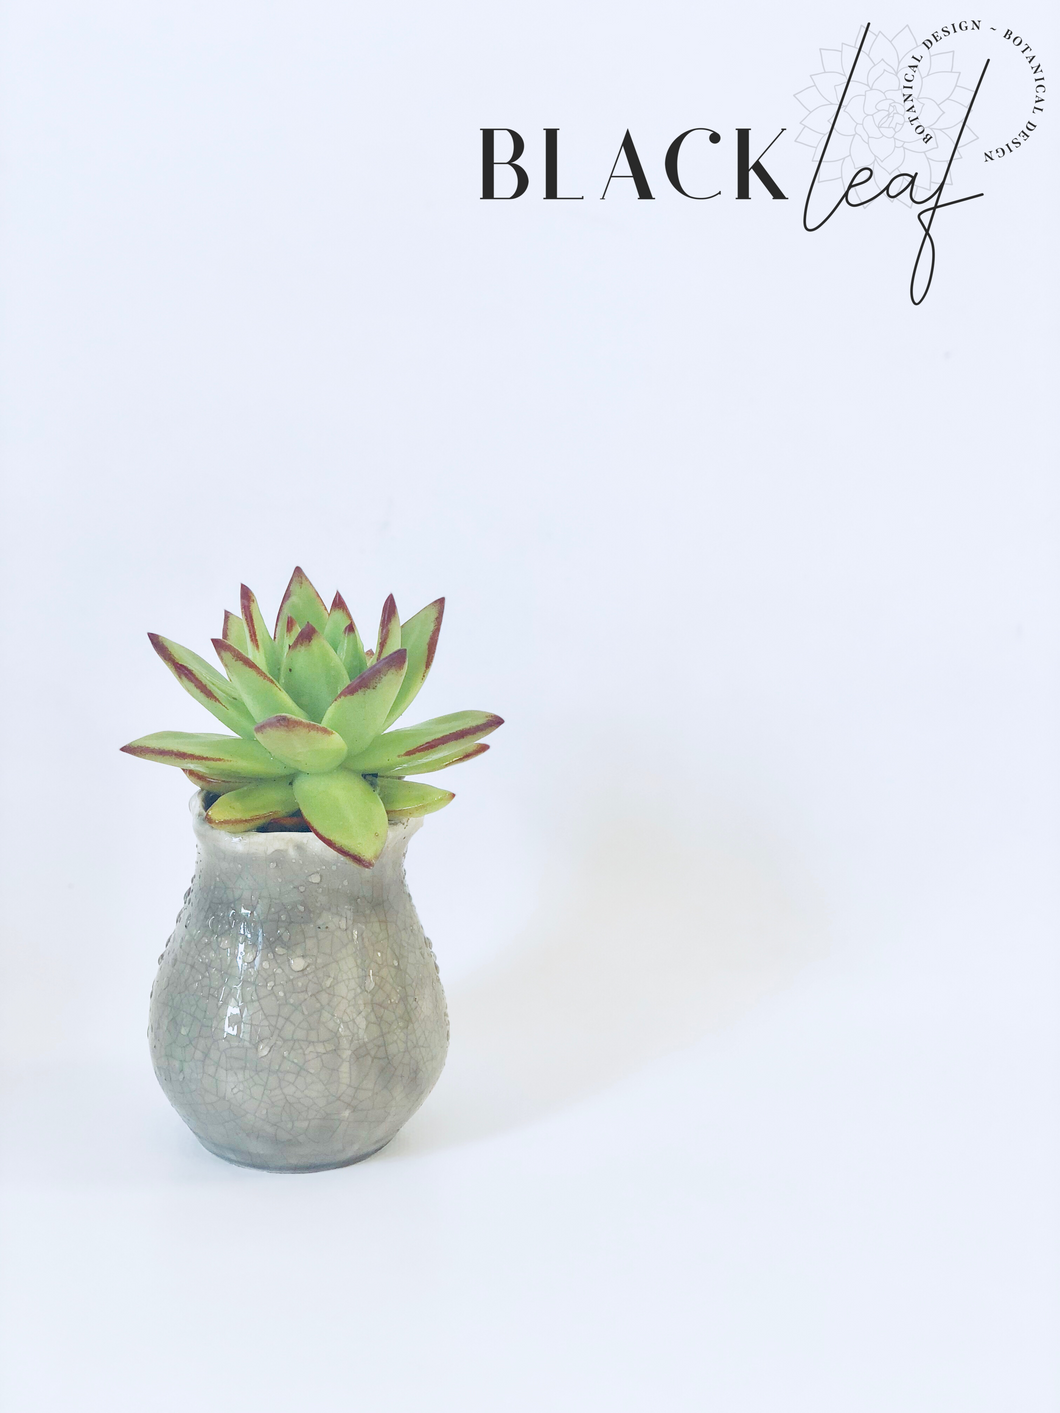 Echeveria Lipstick in ceramic pot.